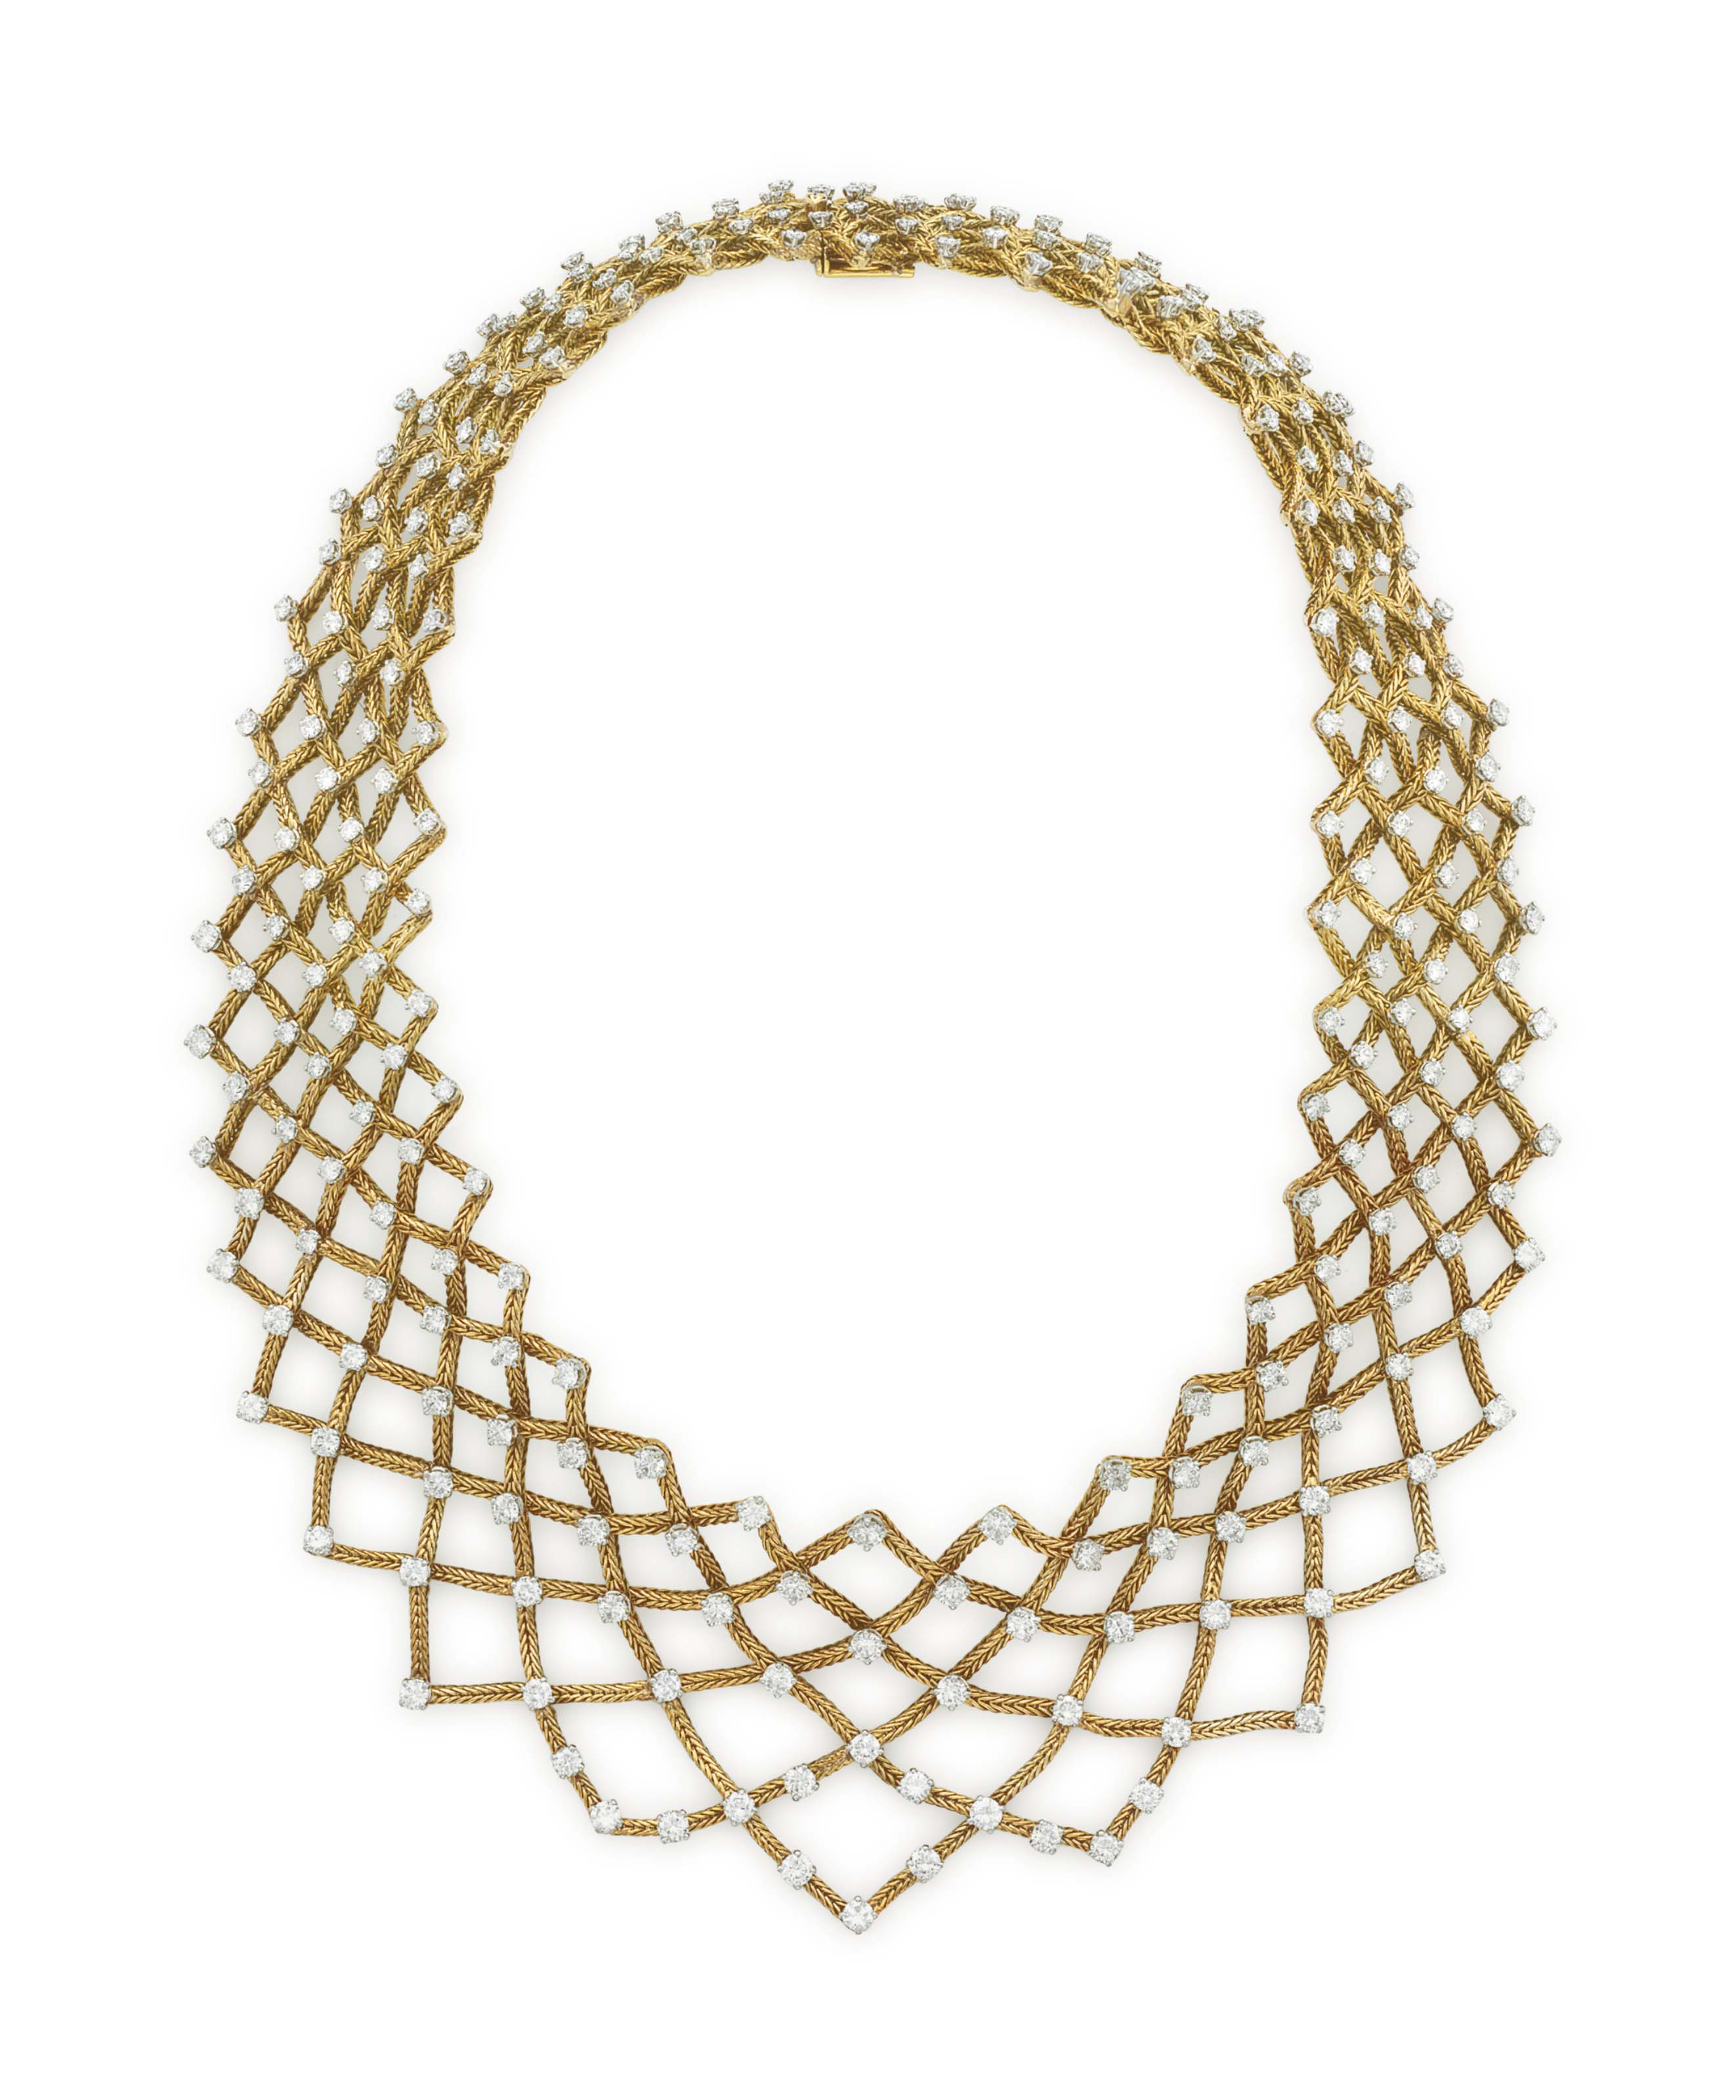 A DIAMOND AND GOLD NECKLACE, BY MARCHAK